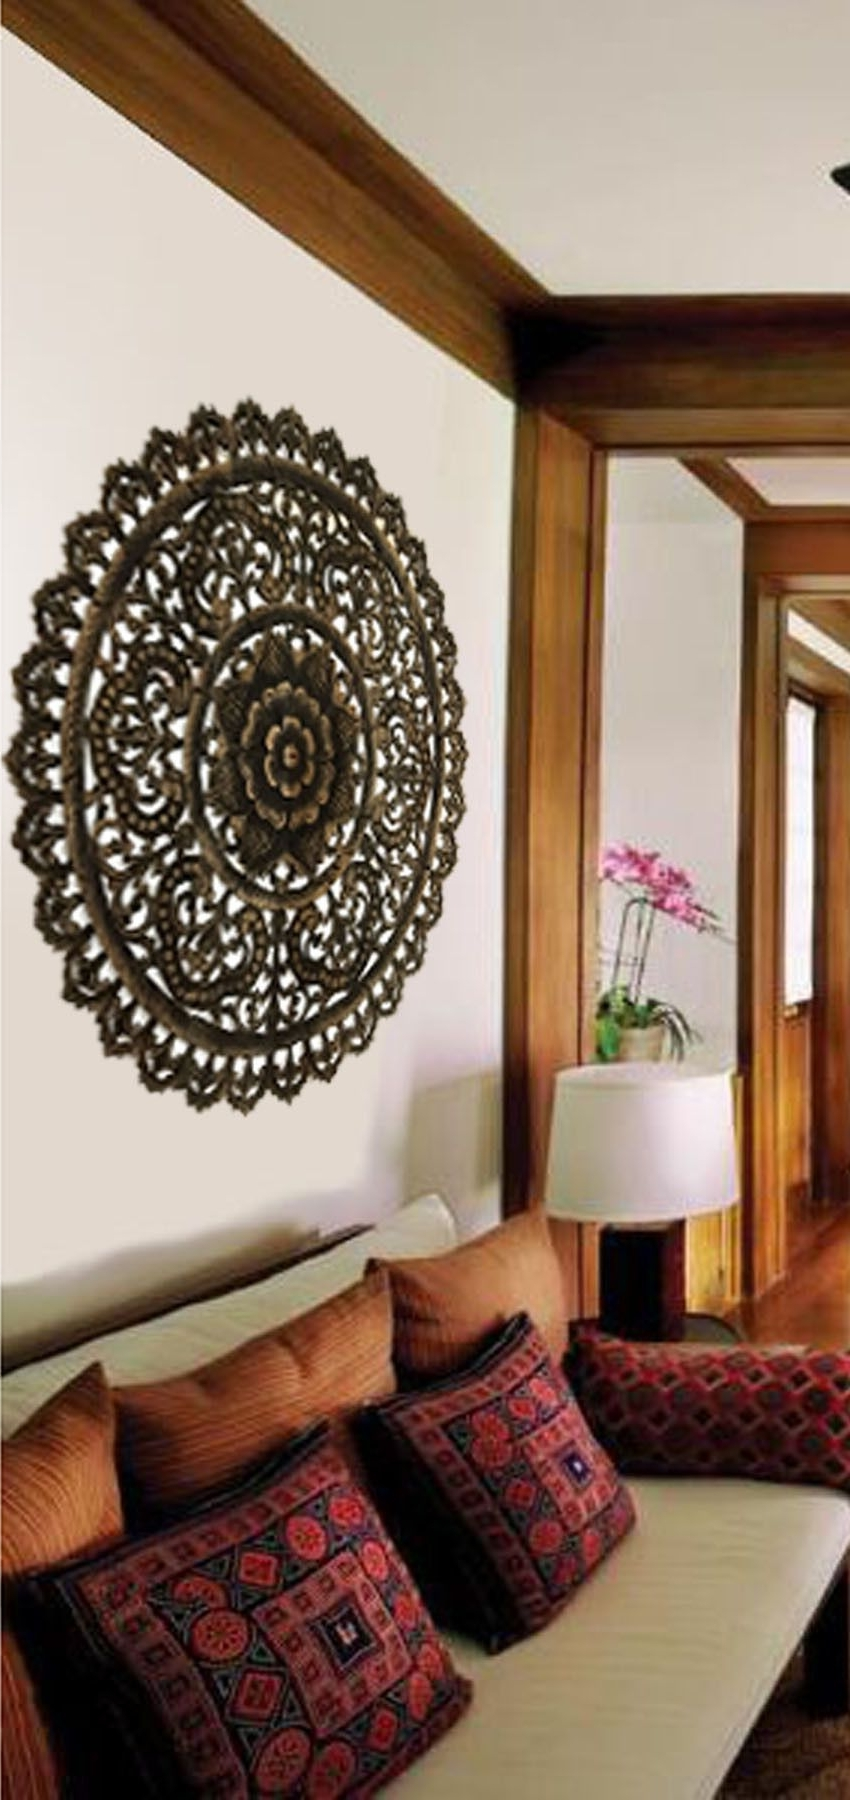 Widely Used Elegant Medallion Wood Carved Wall Plaque. Large Round Wood Carving With Regard To Wood Medallion Wall Art (Gallery 2 of 20)